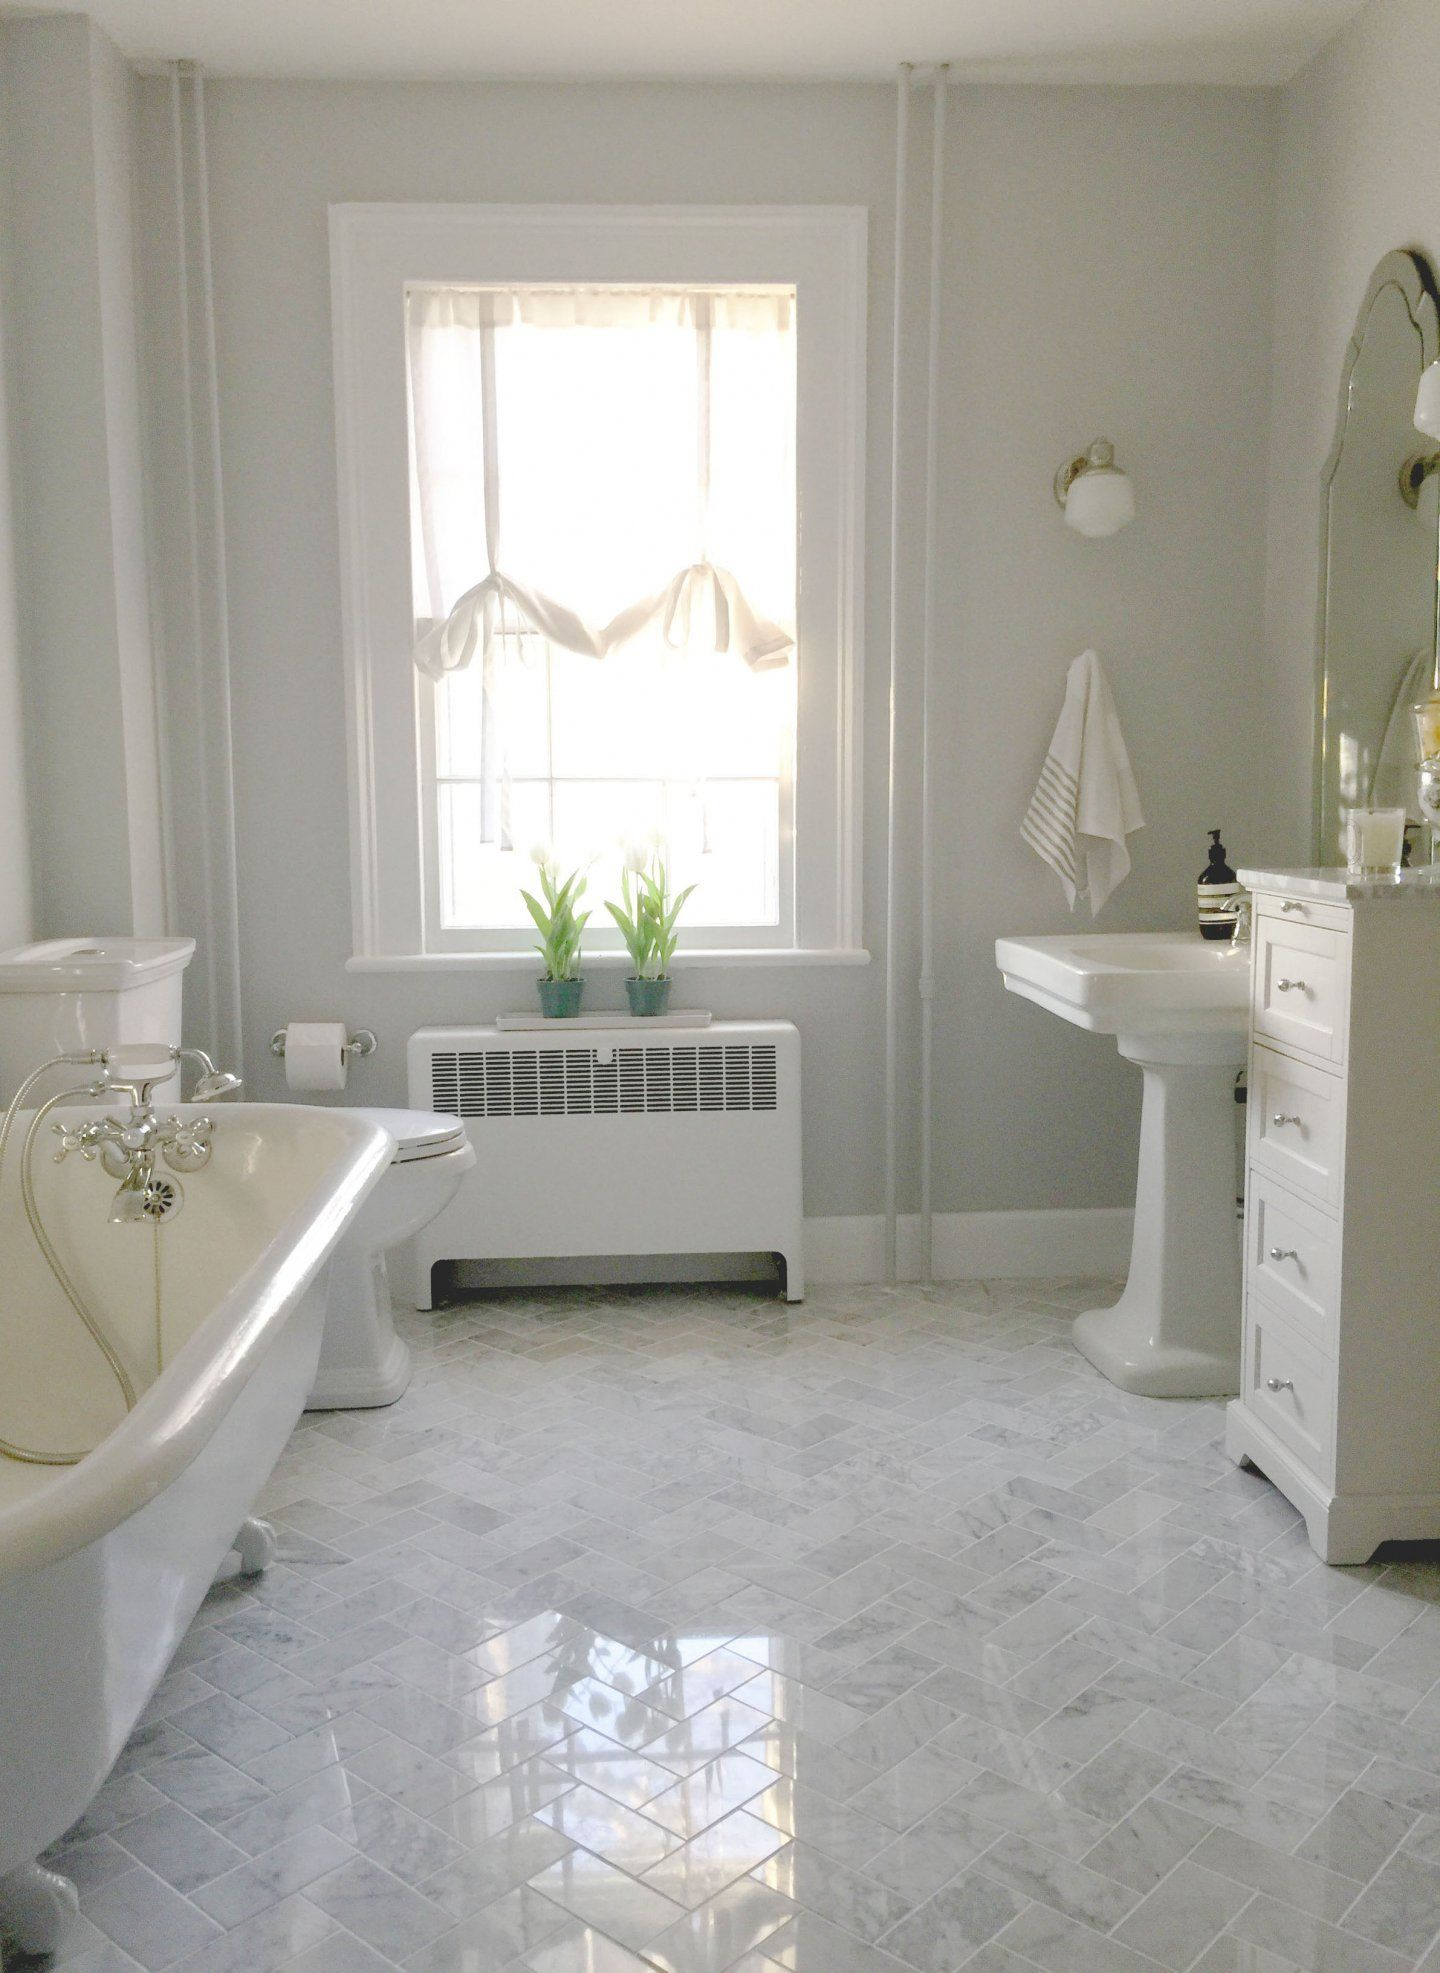 Best bathroom before and afters 2016 tile flooring master best bathroom before and afters 2016 doublecrazyfo Image collections